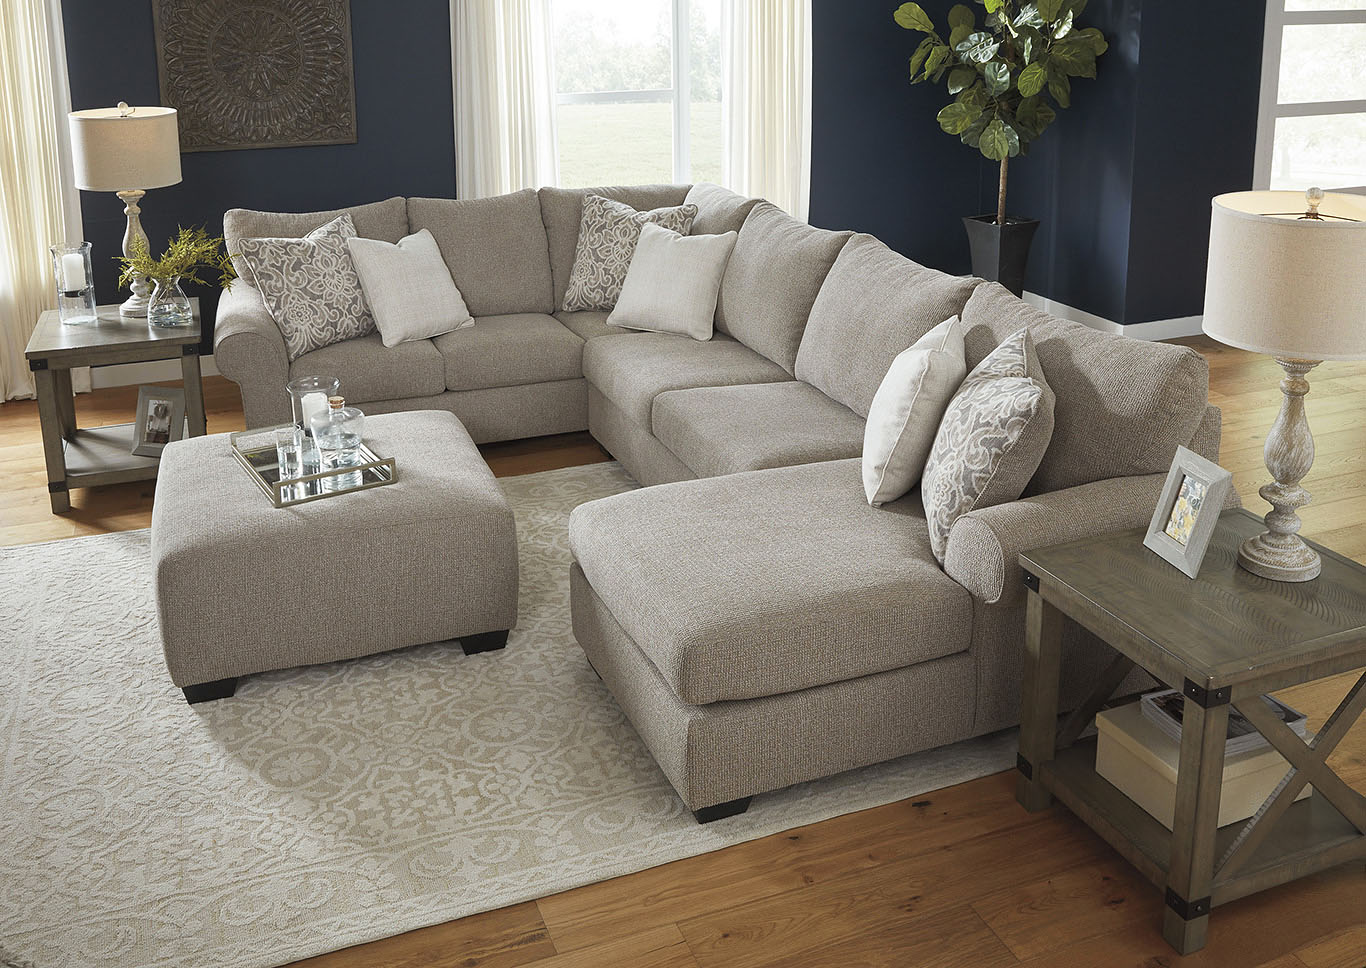 Baranello Stone RAF Chaise End Sectional,Benchcraft